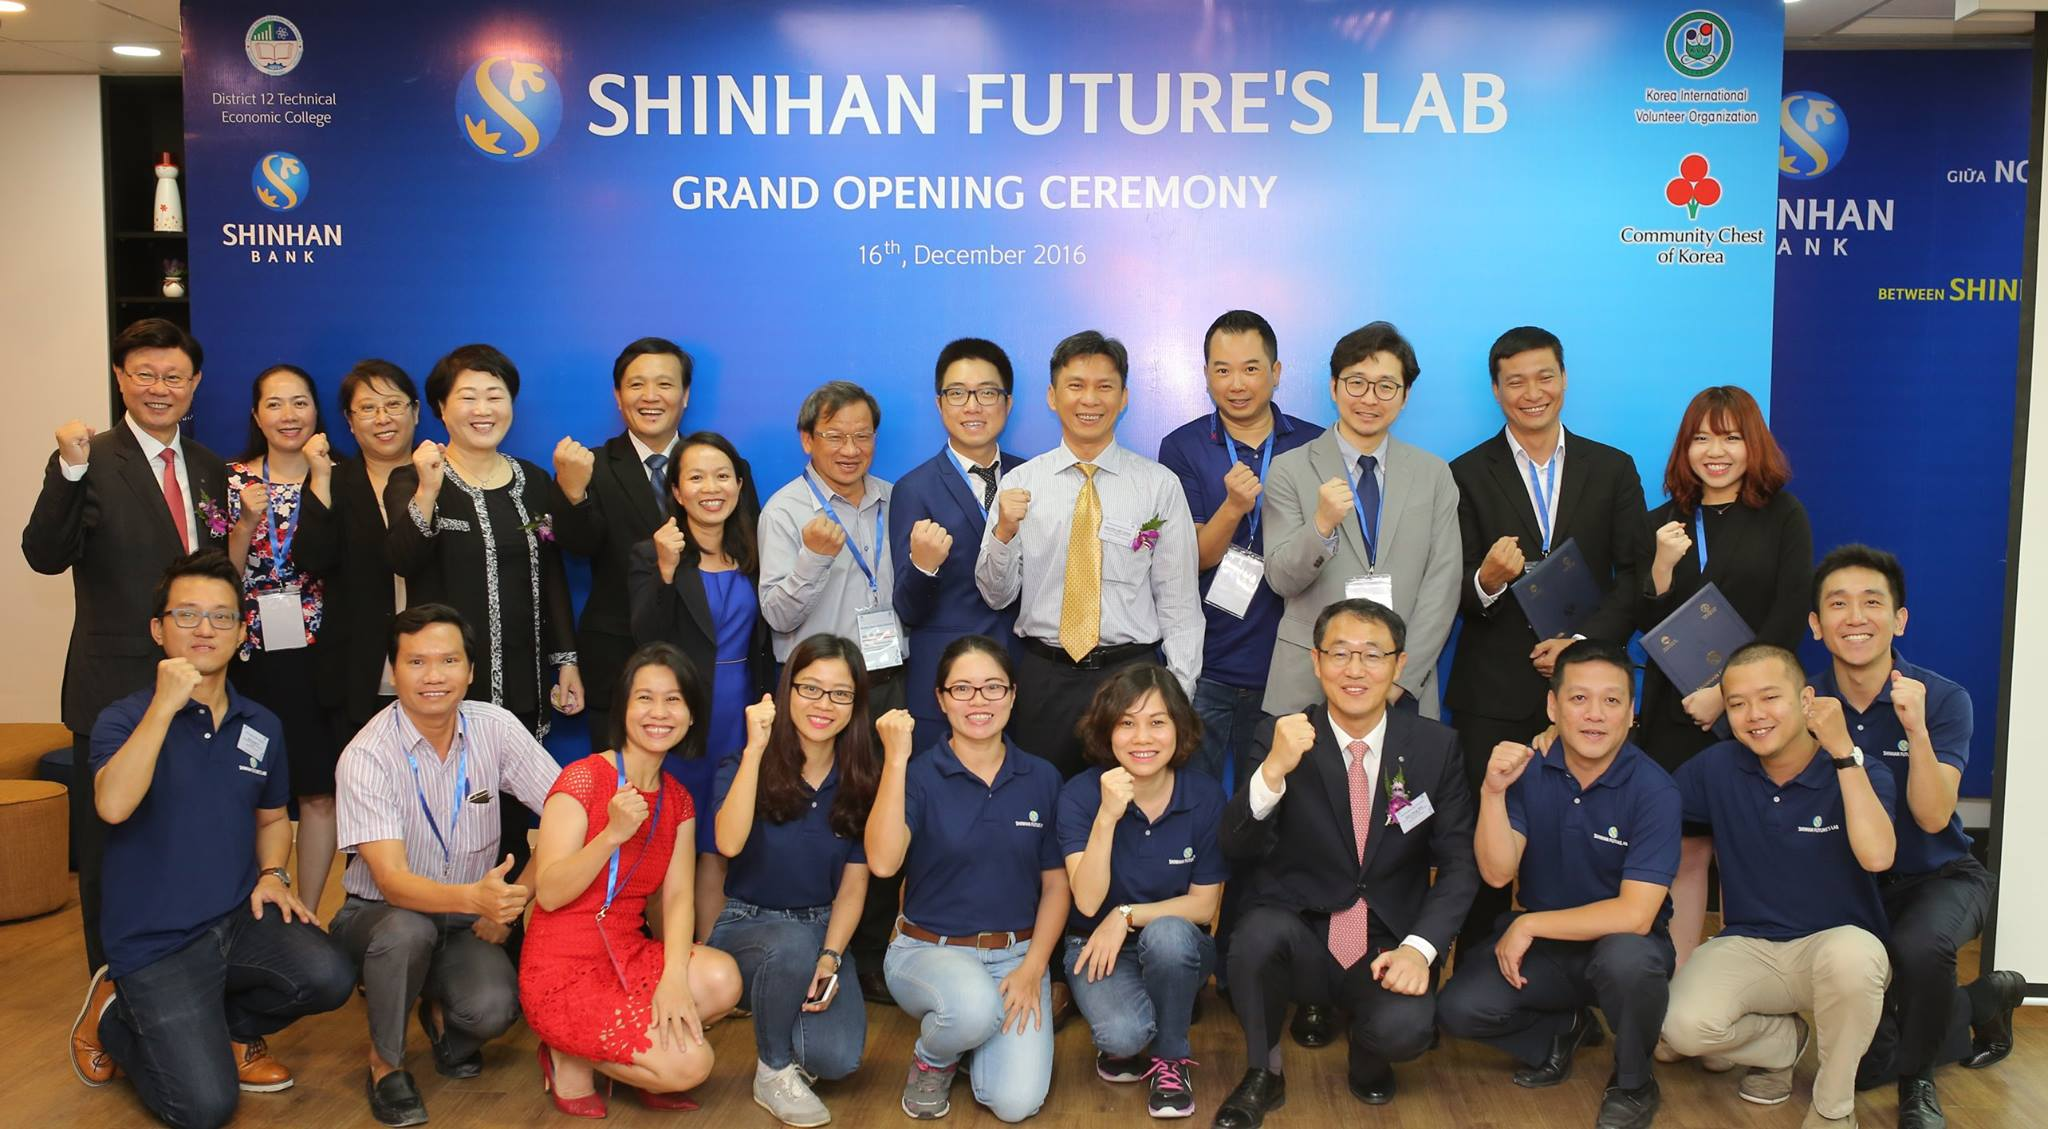 Shinhan Future's Lab Vietnam